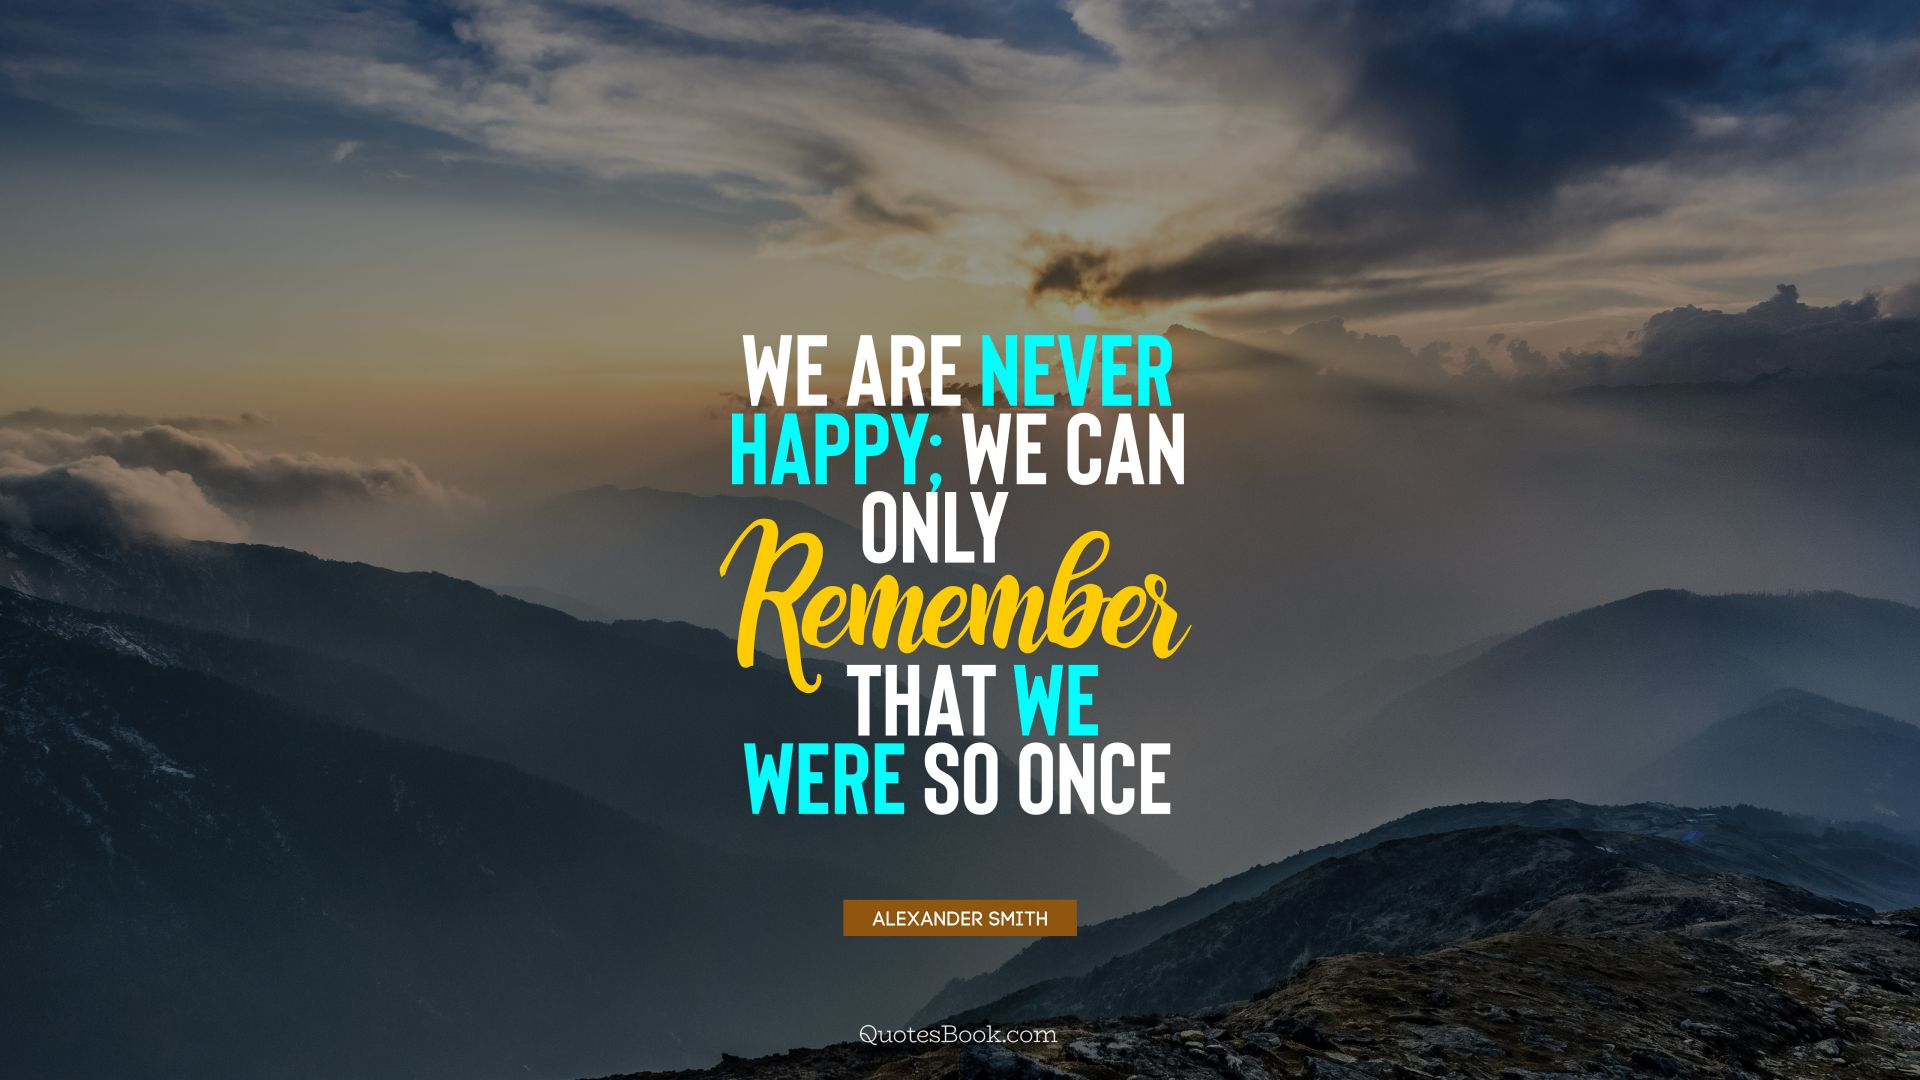 We are never happy; we can only remember that we were so once. - Quote by Alexander Smith